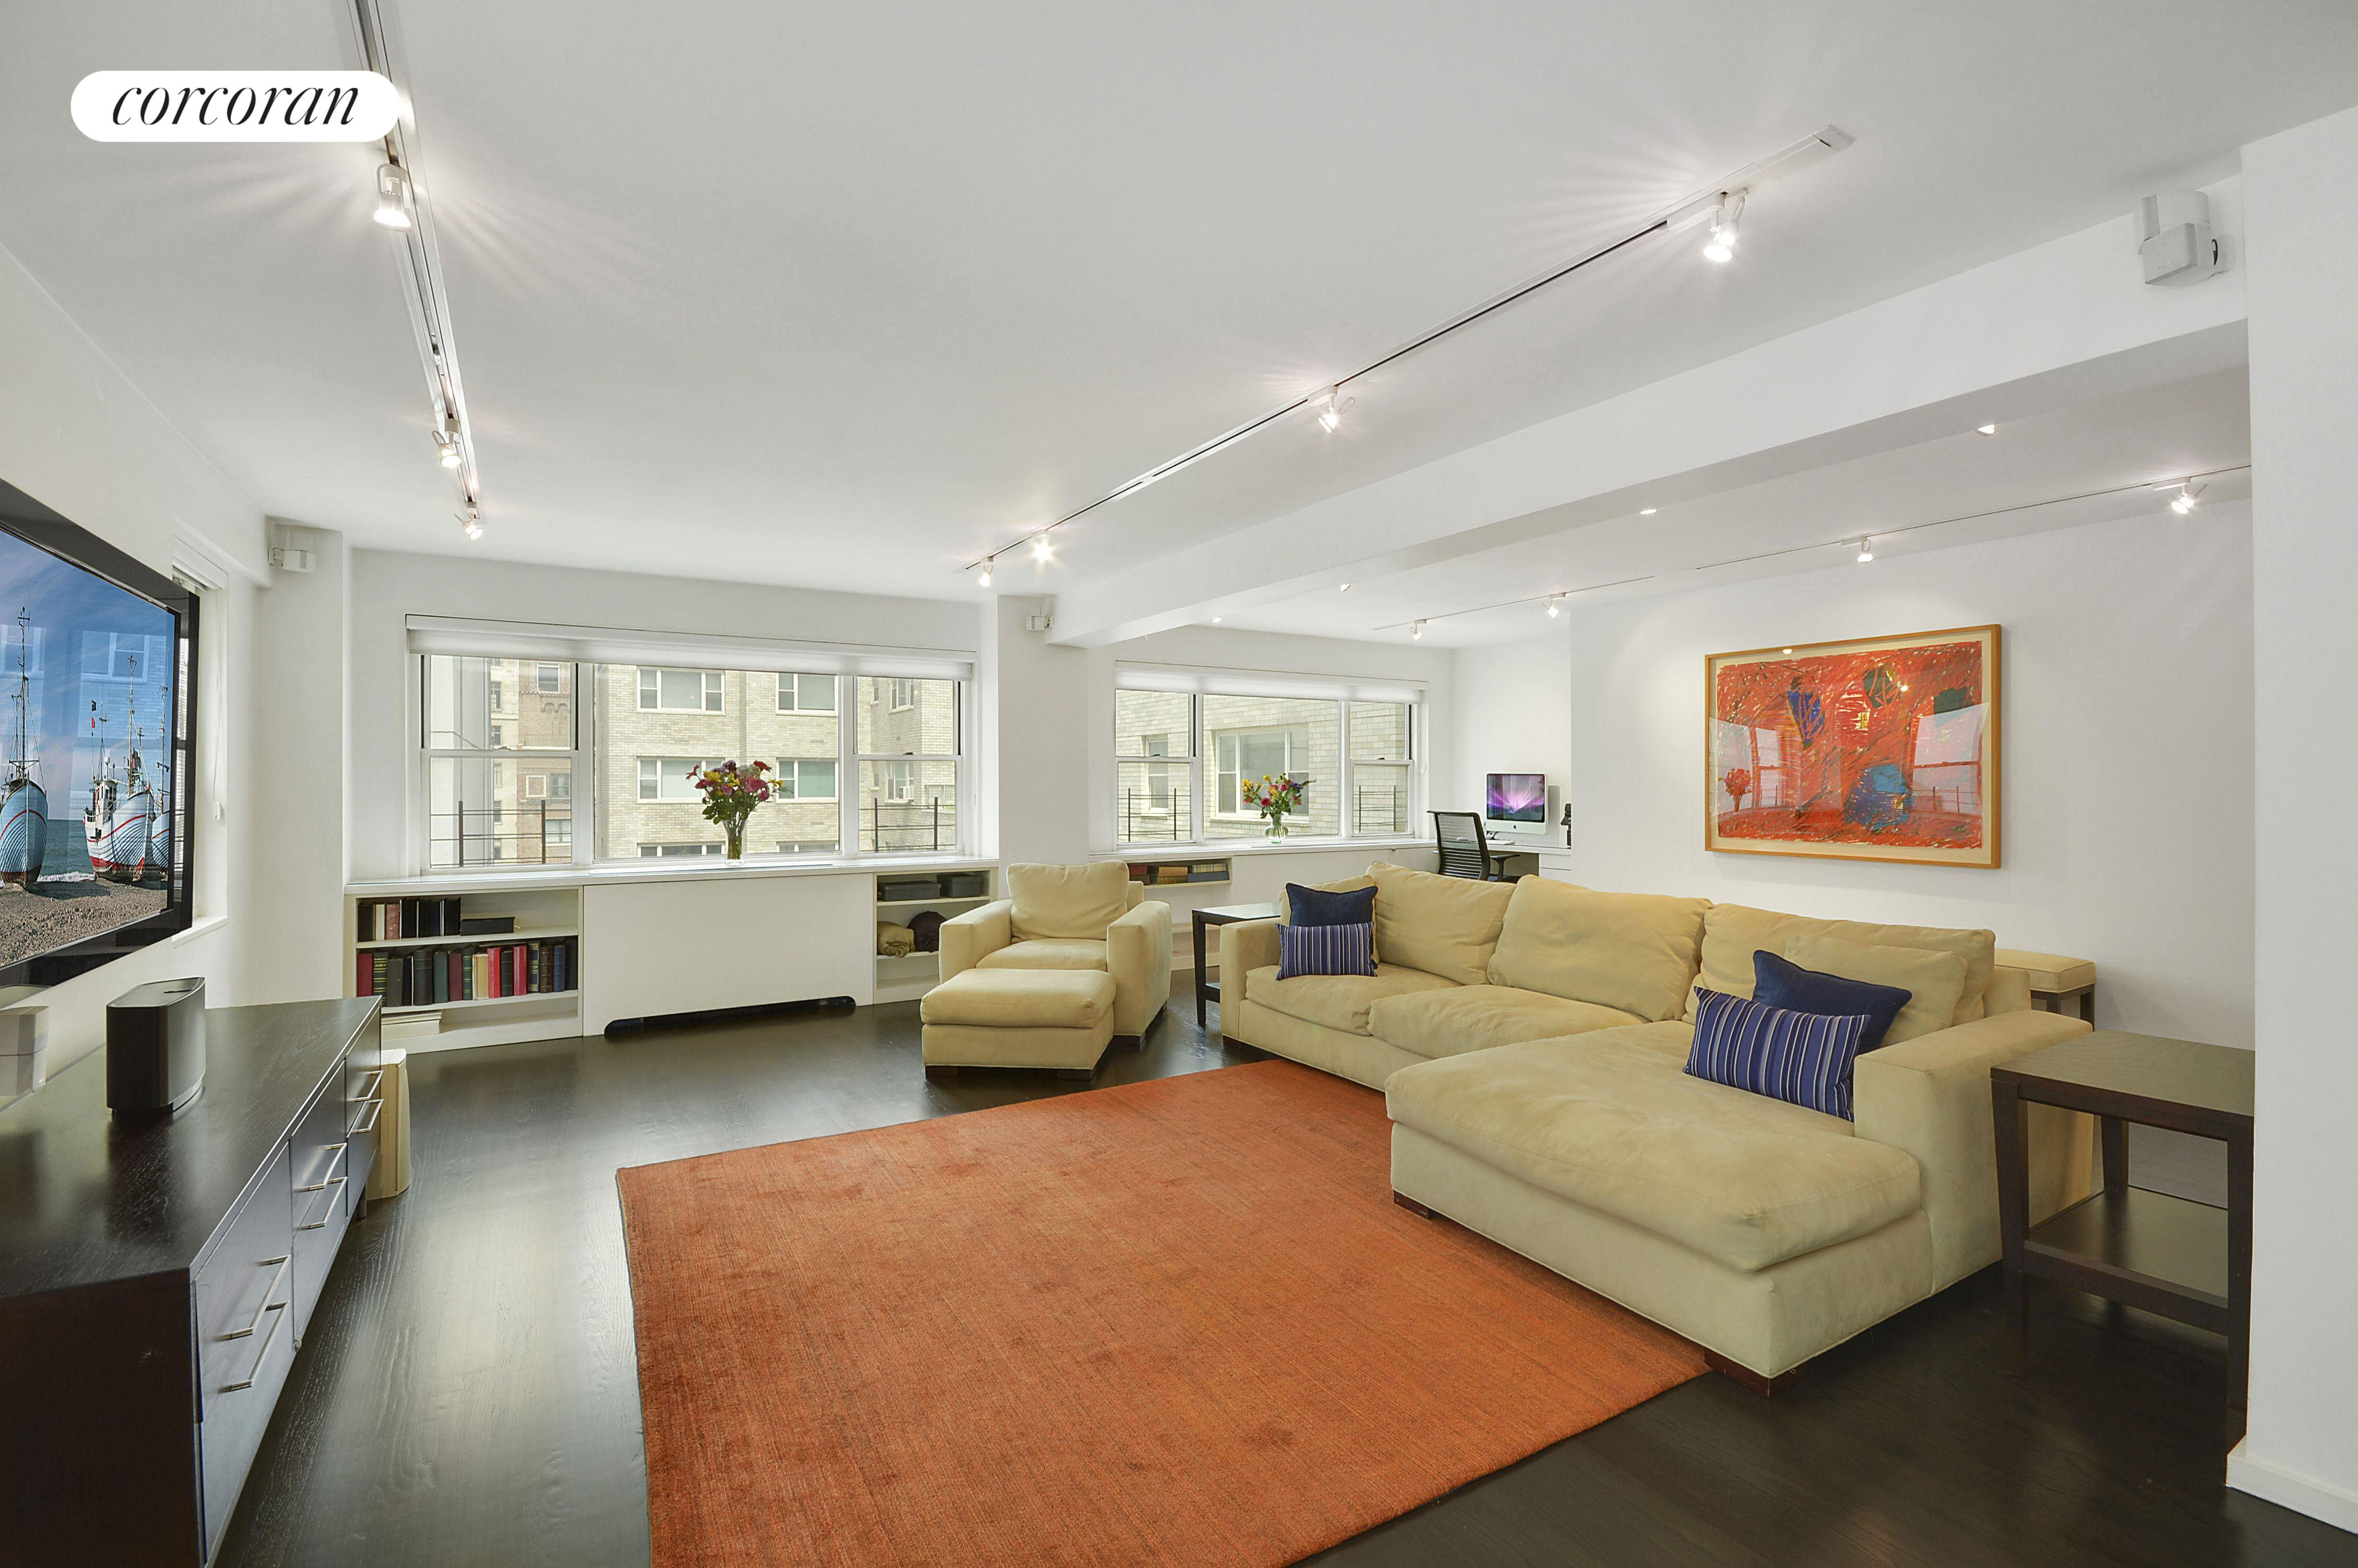 100 West 57th Street, Apt. 18JK, Midtown West